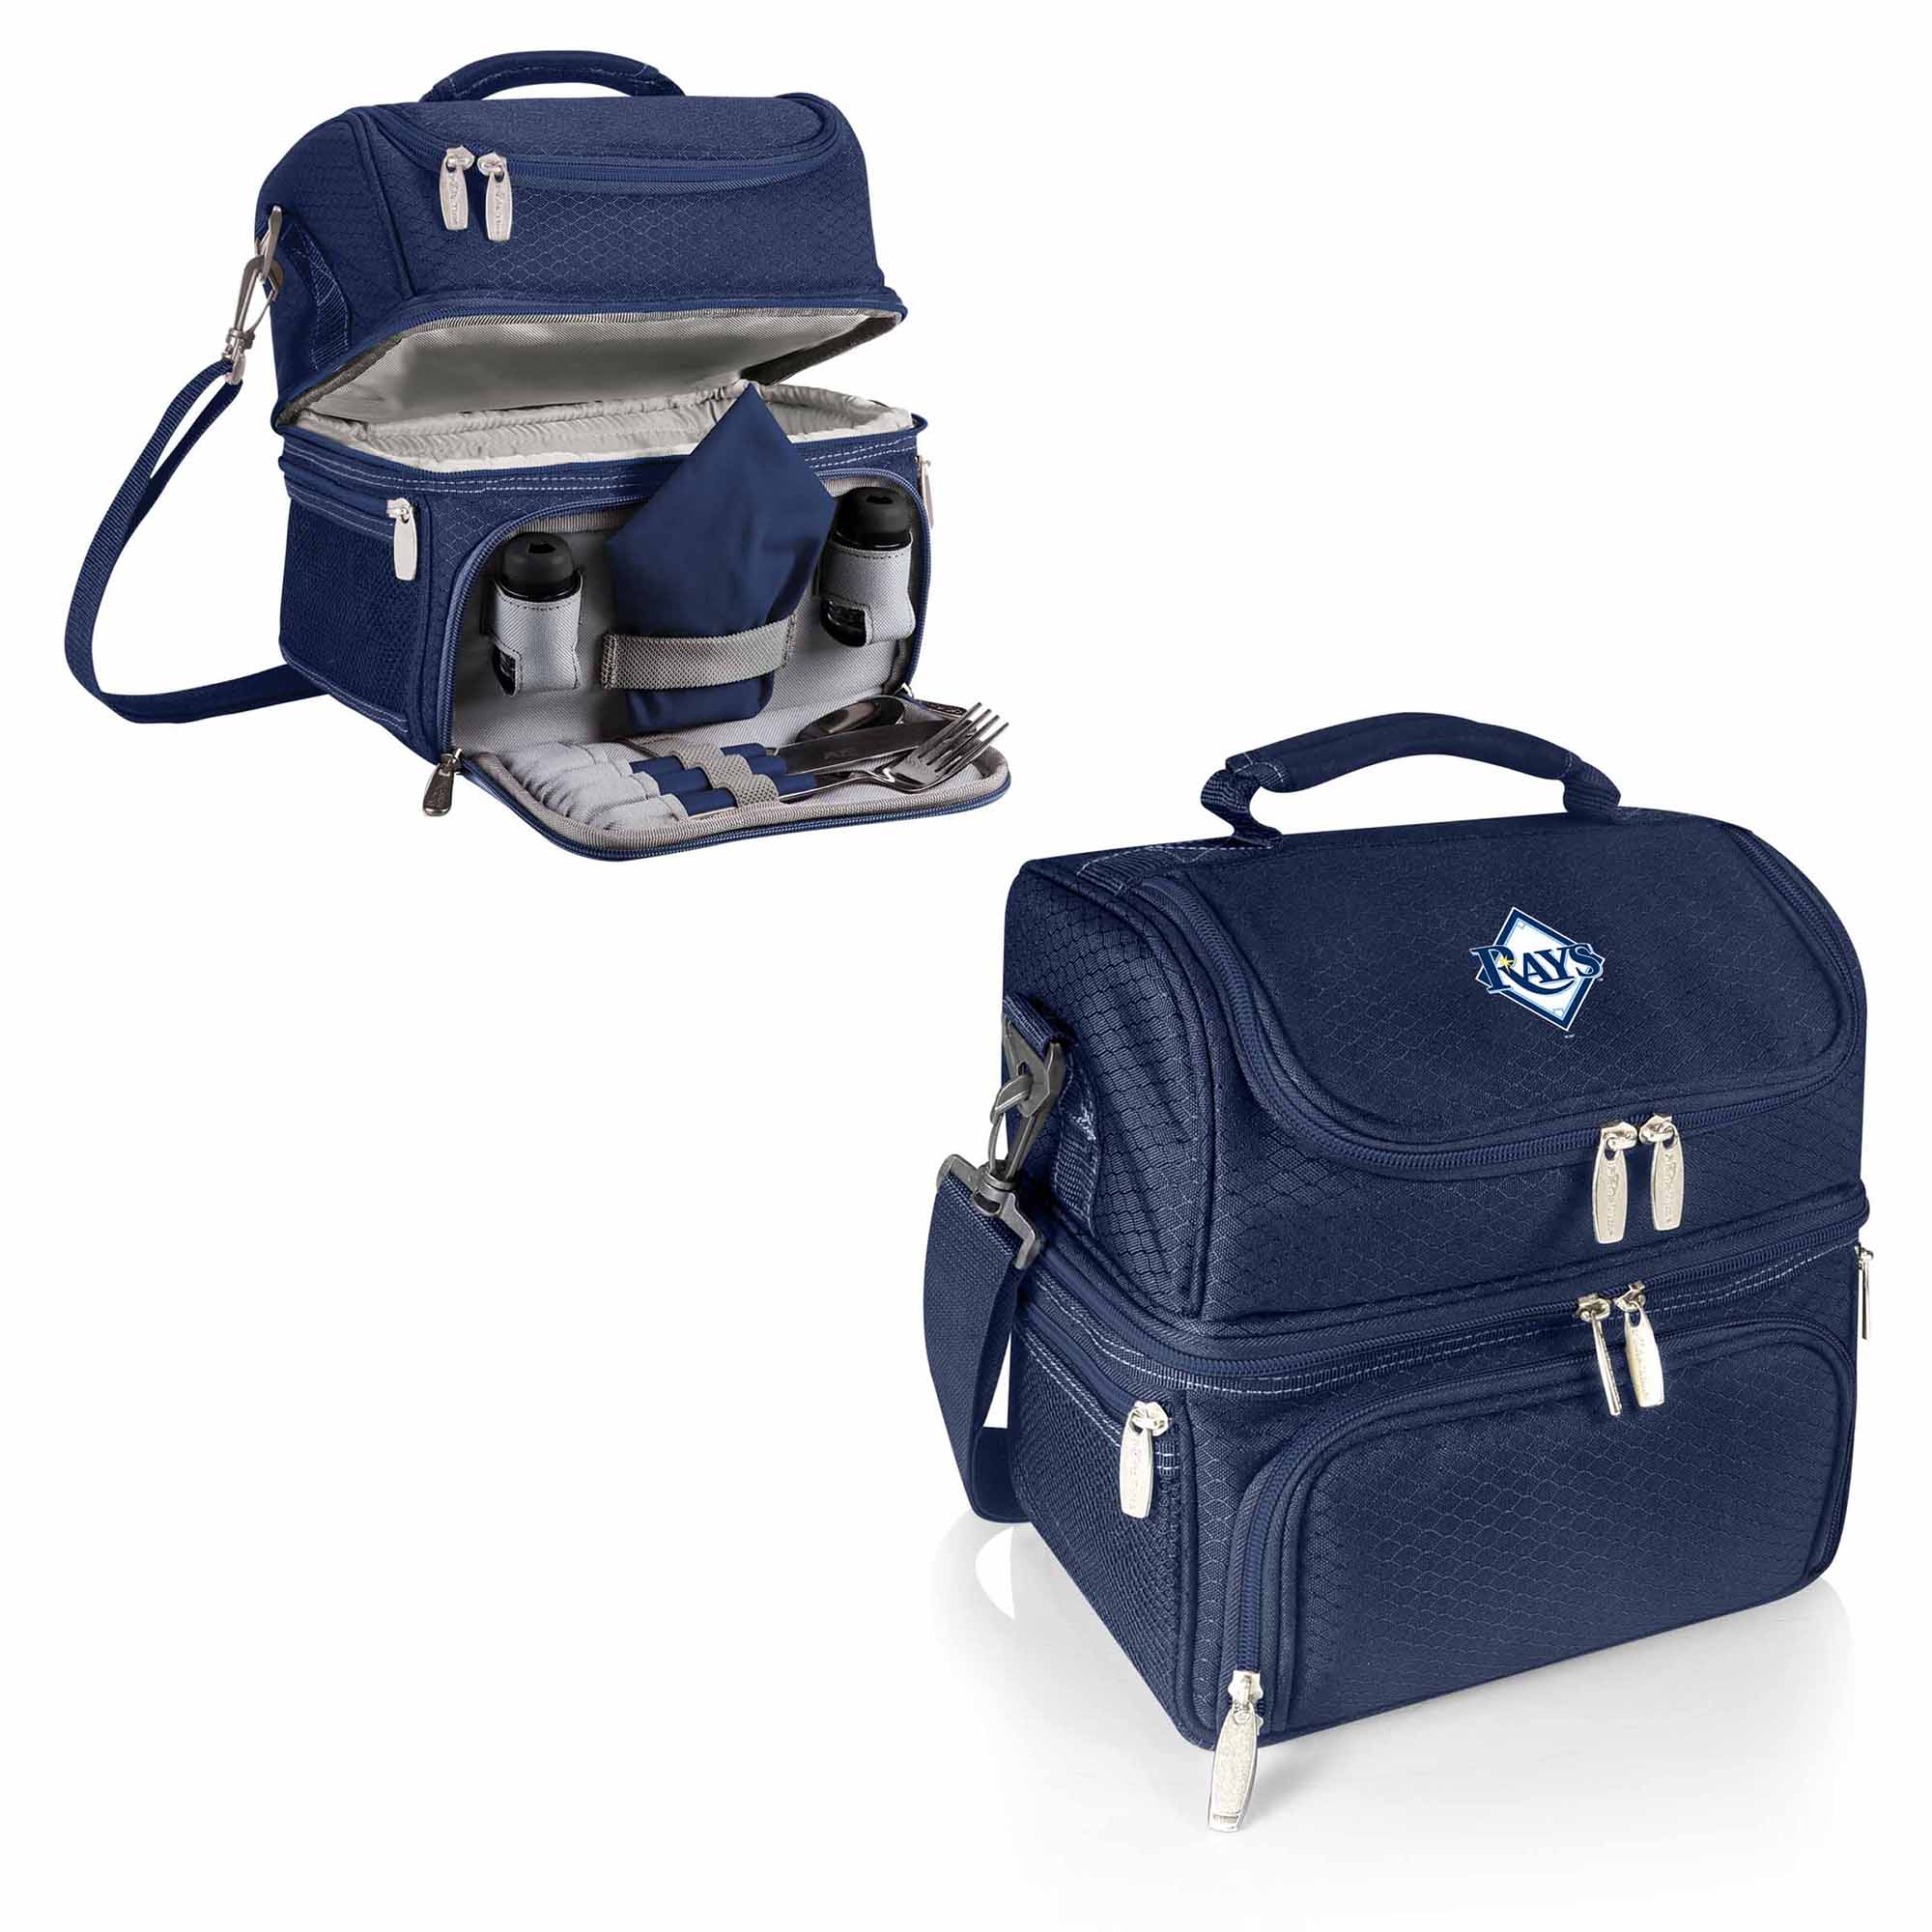 Tampa Bay Rays Pranzo Lunch Tote - Navy - No Size